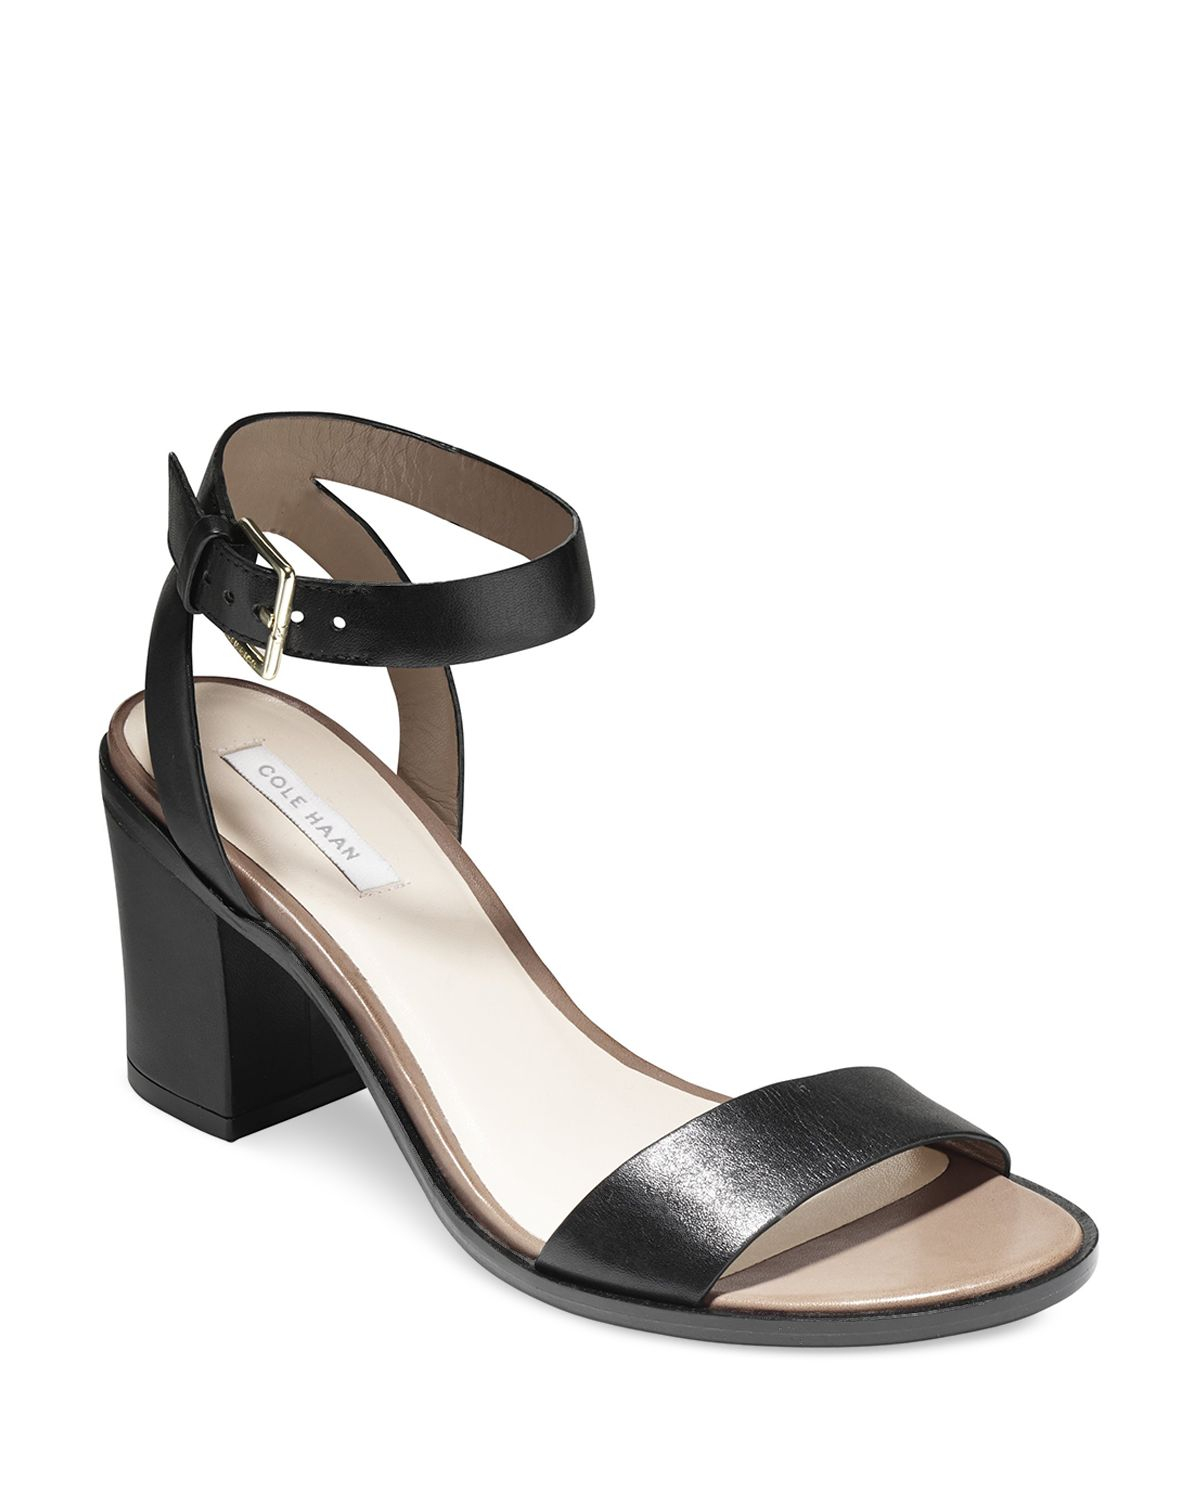 53b03245cab Lyst - Cole Haan Ankle Strap Sandals - Cambon City Mid Heel in Black